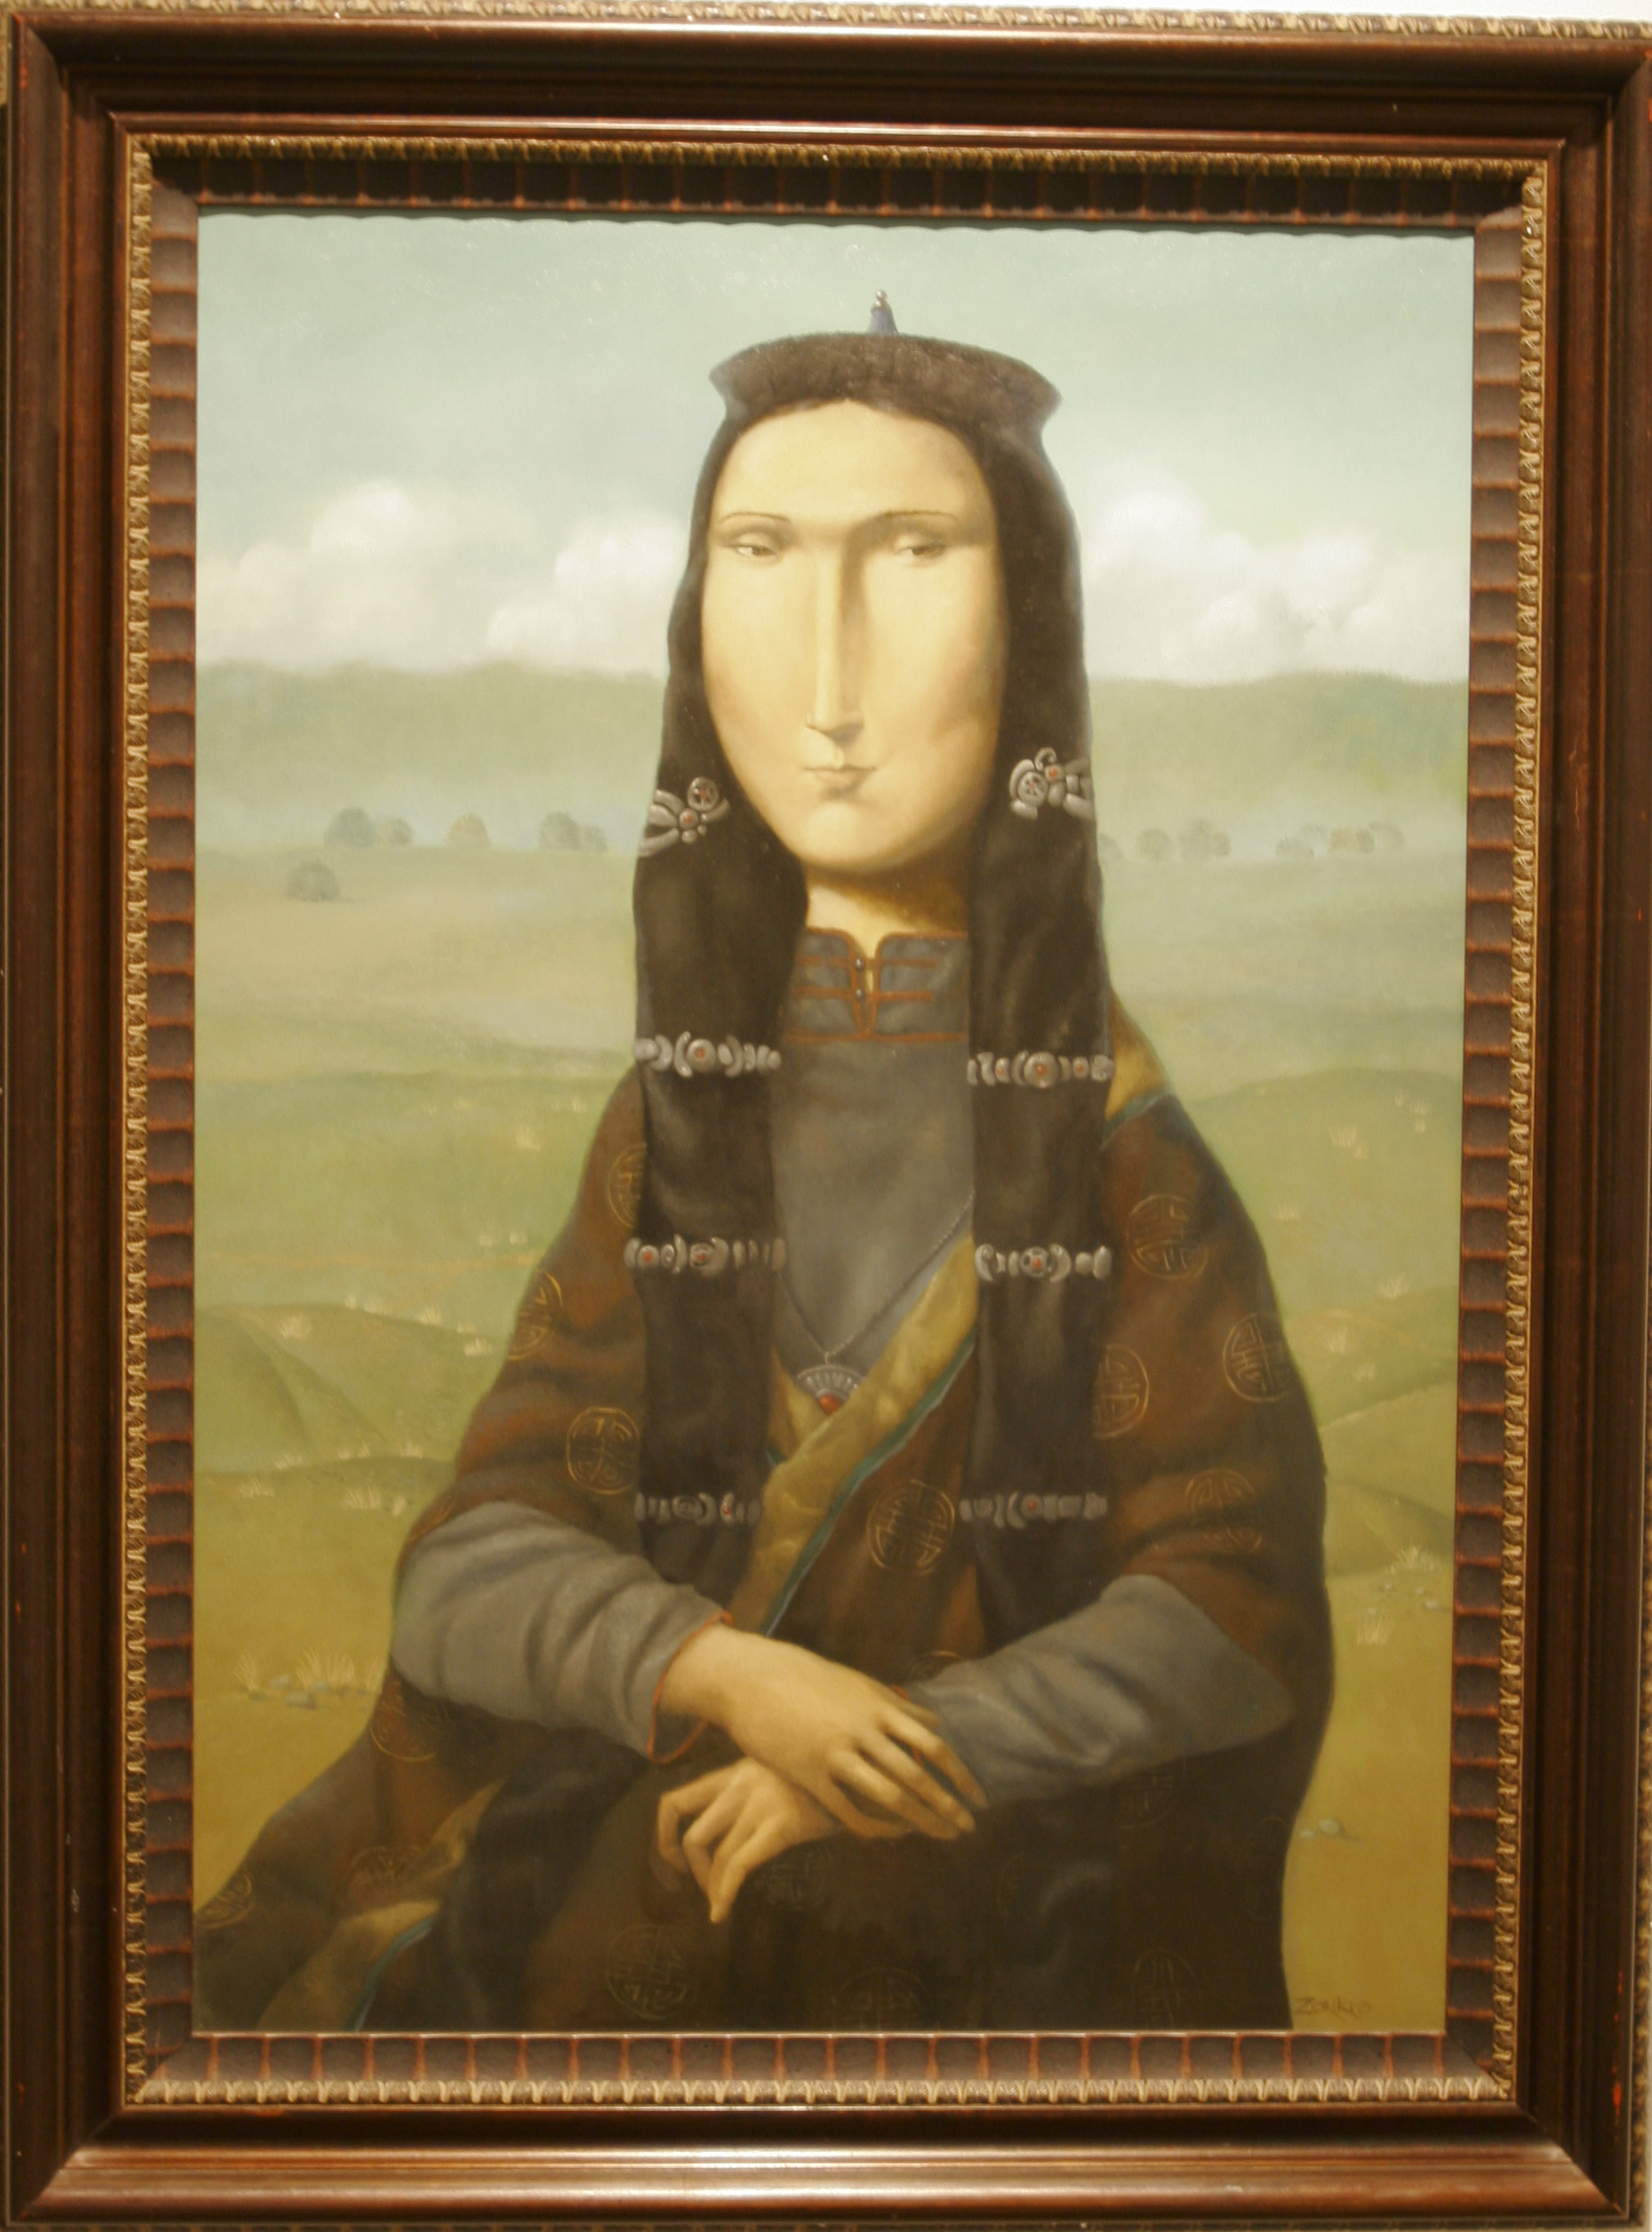 Could this be the new Mona Lisa?